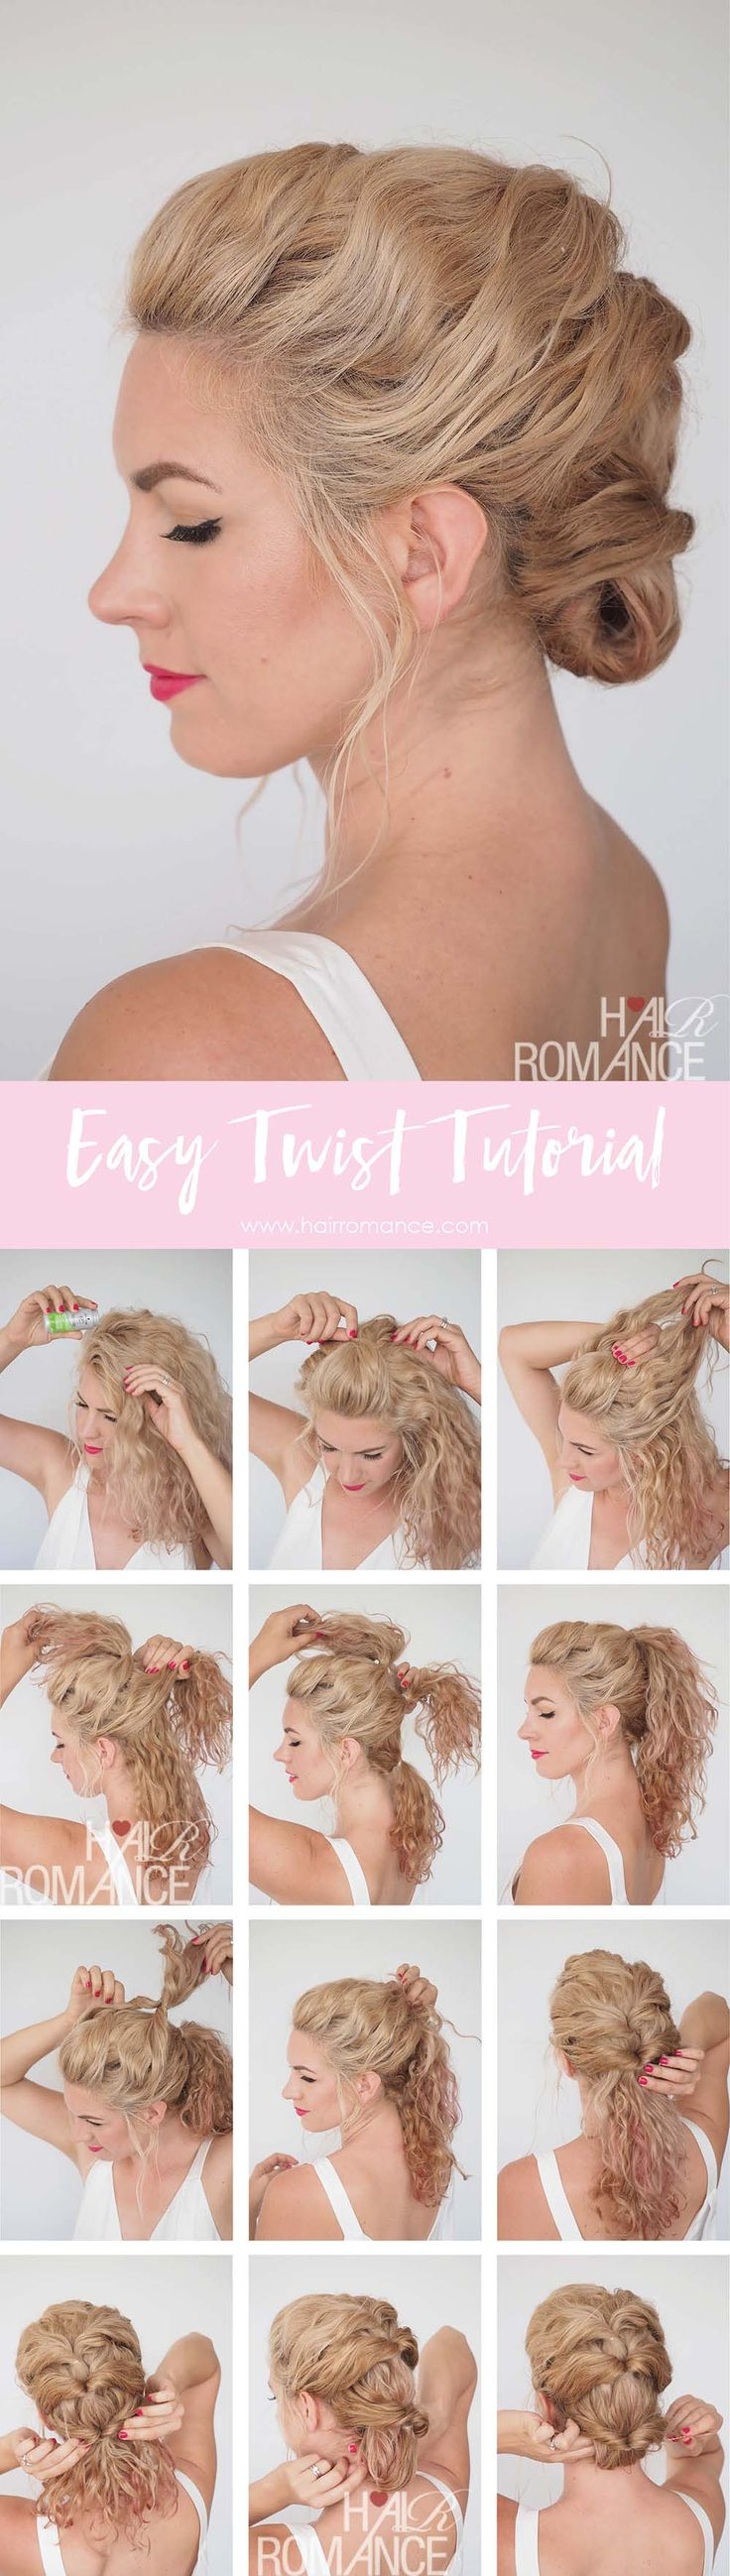 Quick and easy twist hairstyle tutorial – Get great hair fast